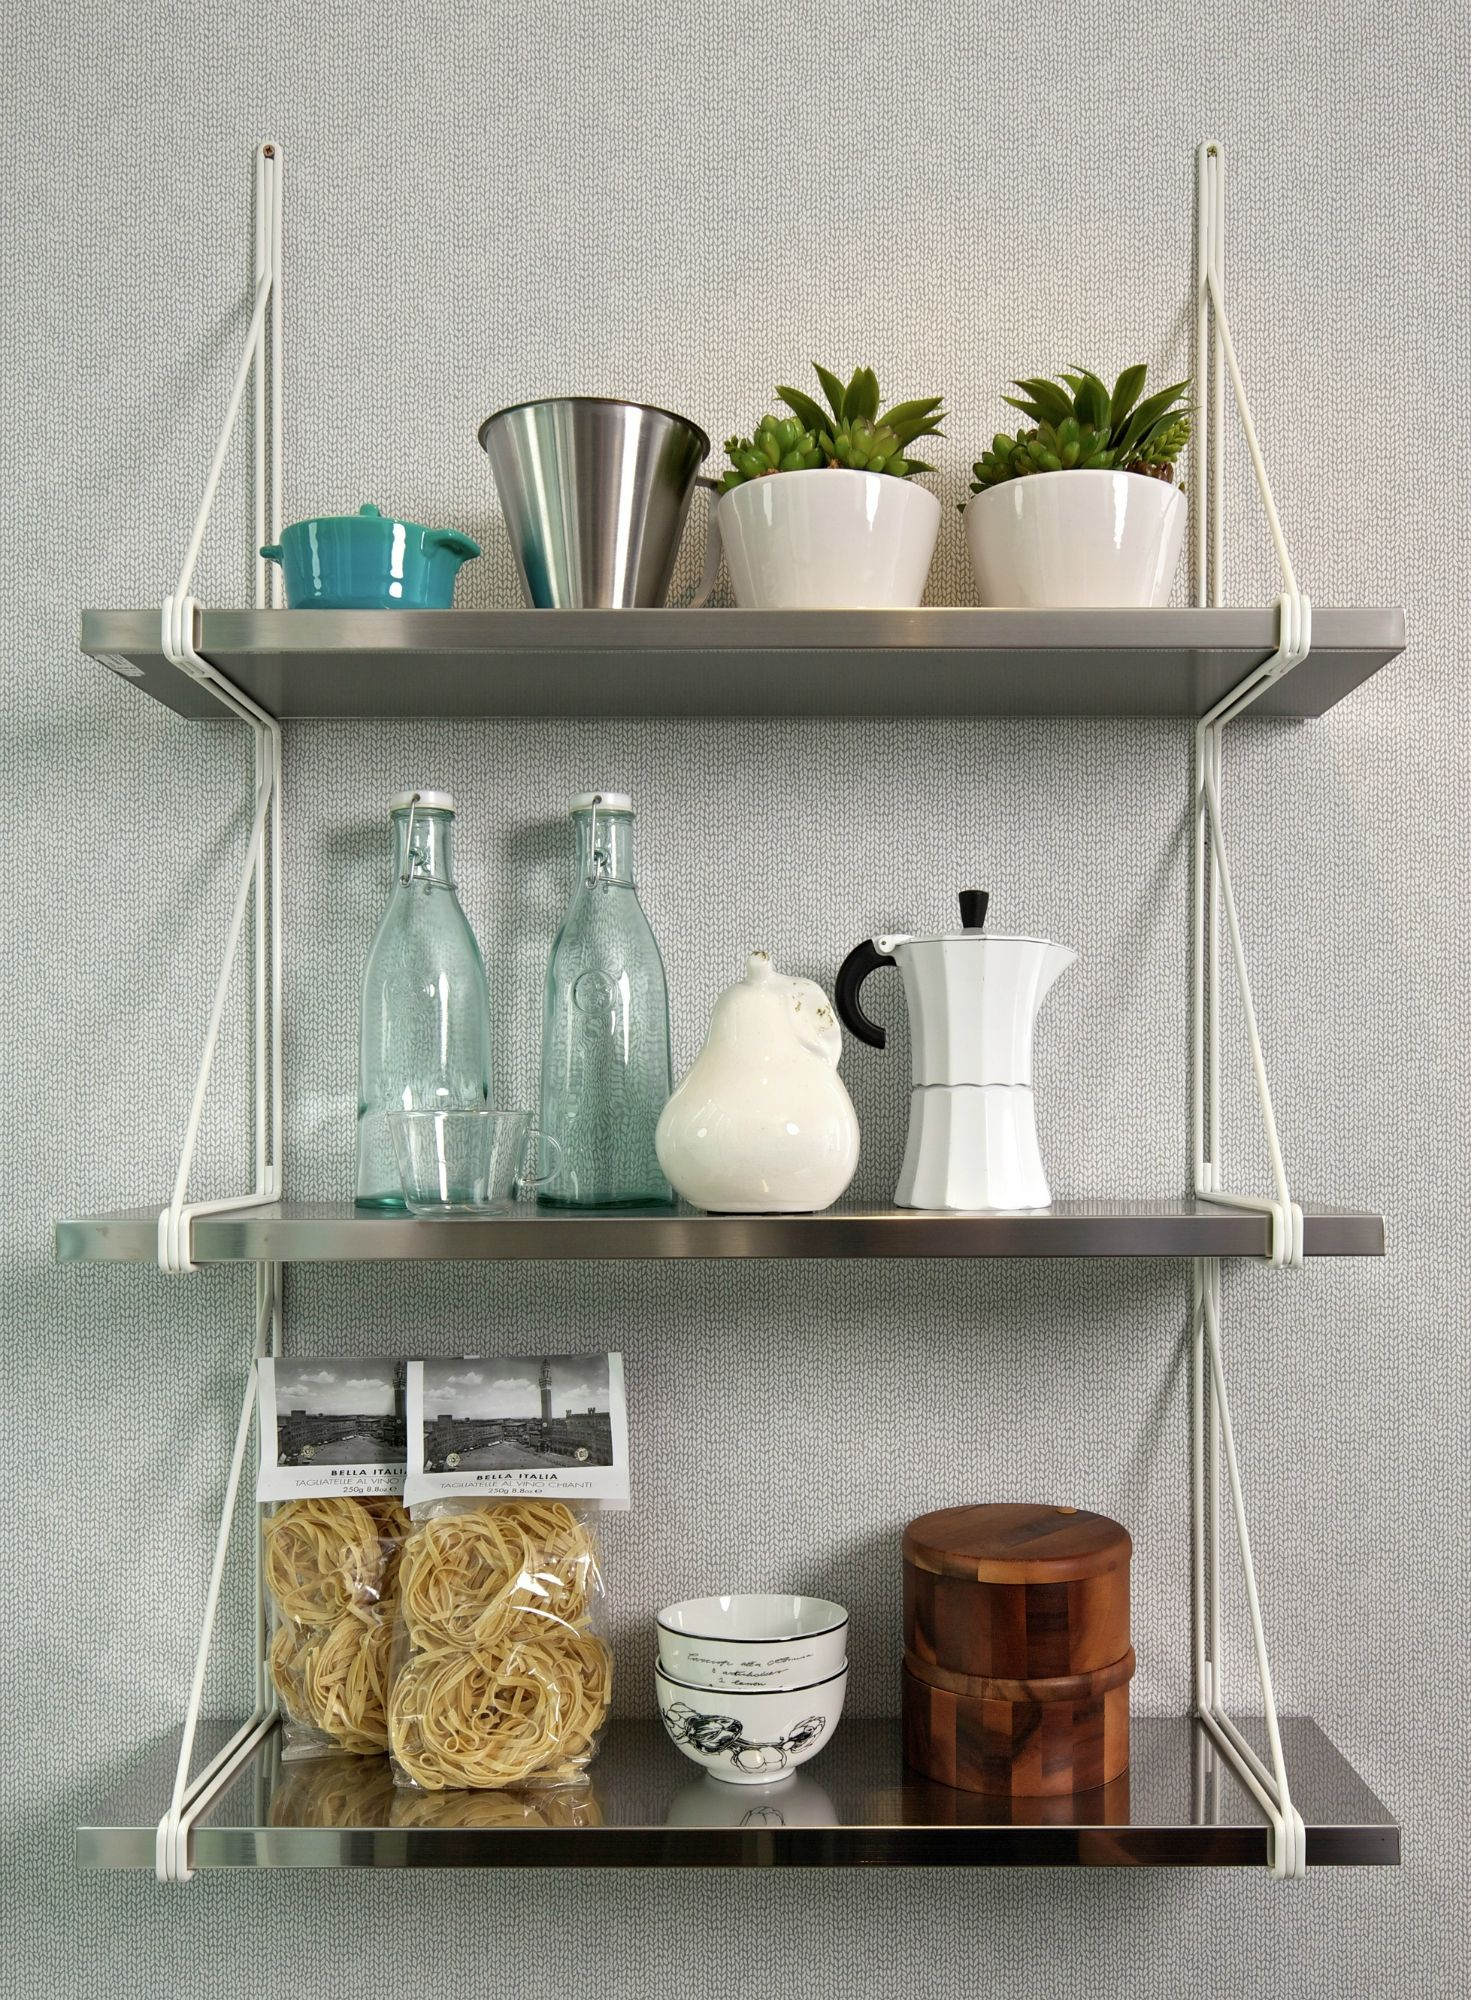 Great Suna Interior Design   The Filaments   Kitchen Wall Mounted Shelving Great Ideas